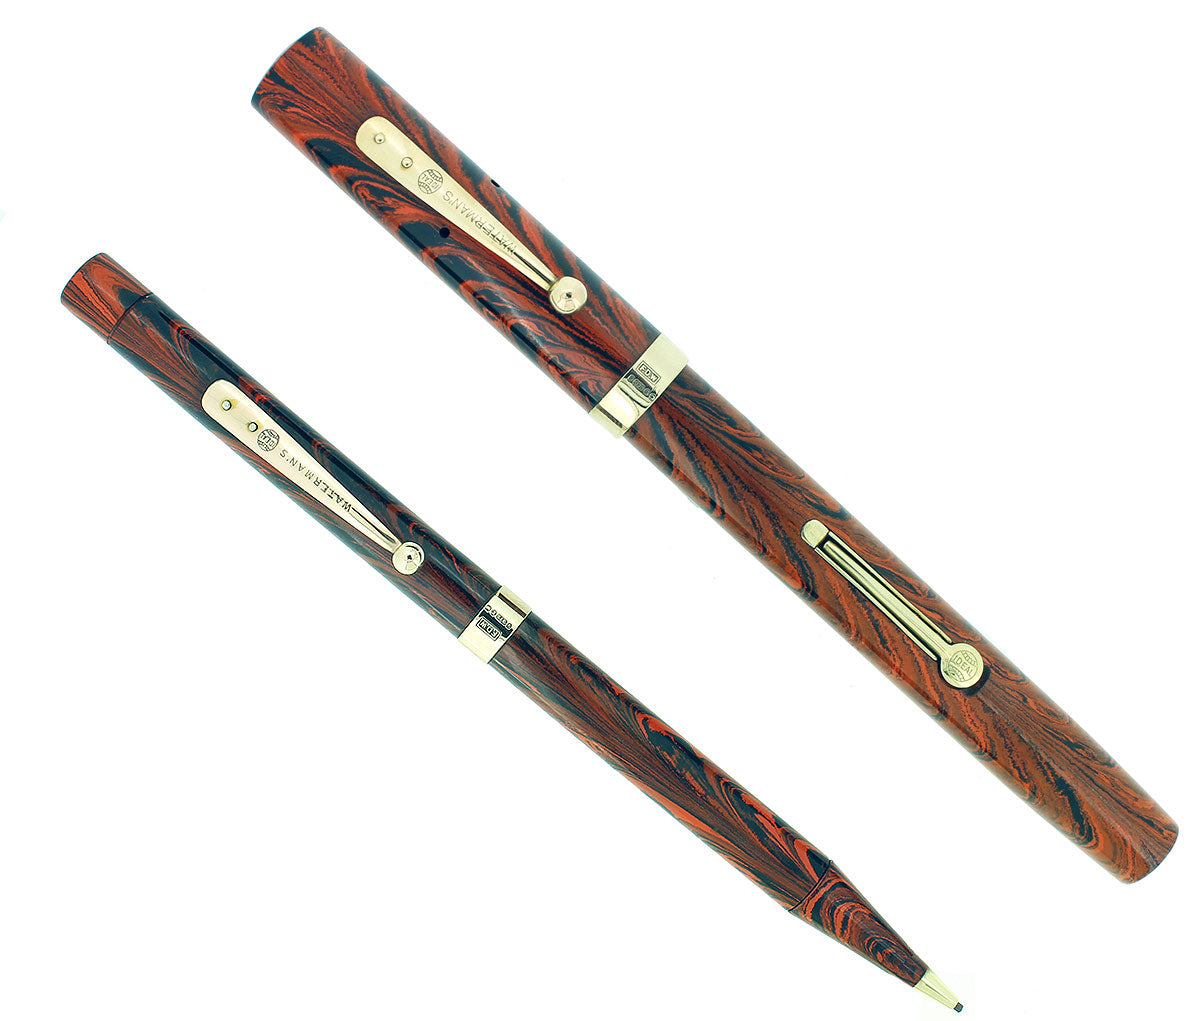 1920S WATERMAN RED RIPPLE 52 FOUNTAIN PEN AND PENCIL SET 9CT GOLD BANDS RESTORED OFFERED BY ANTIQUE DIGGER